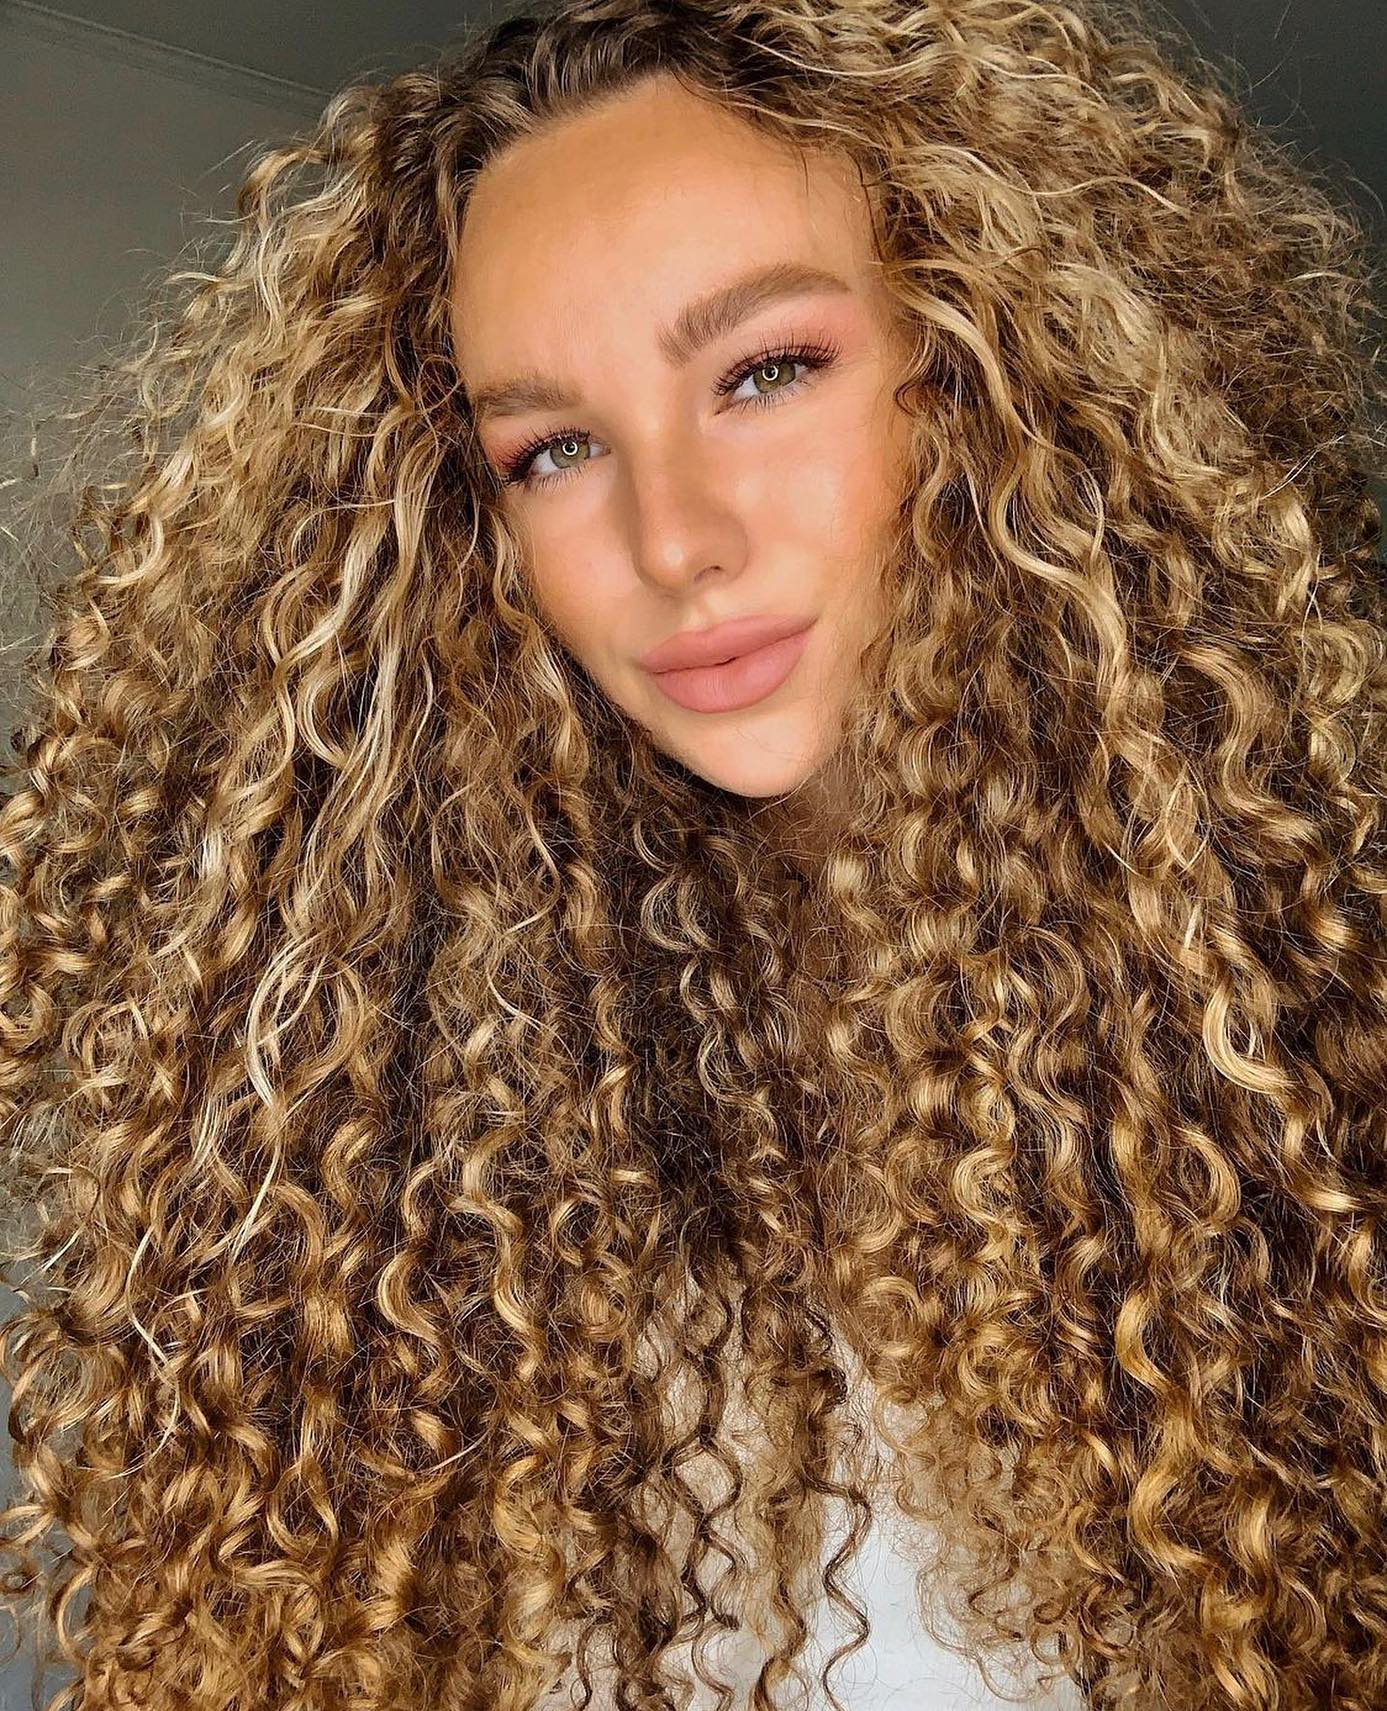 Texture Tuesday ✨While we use the curl typing system as a starting point, we can agree that textured hair doesn't fit in a box. Most of us have multiple curl patterns (and porosities) throughout our hair, which is why some people describe their hair as multi-textured. How do you feel about the curl typing system? Is it helpful? Does it really matter? What's most important for you when it comes to understanding your unique hair texture? Share with us below